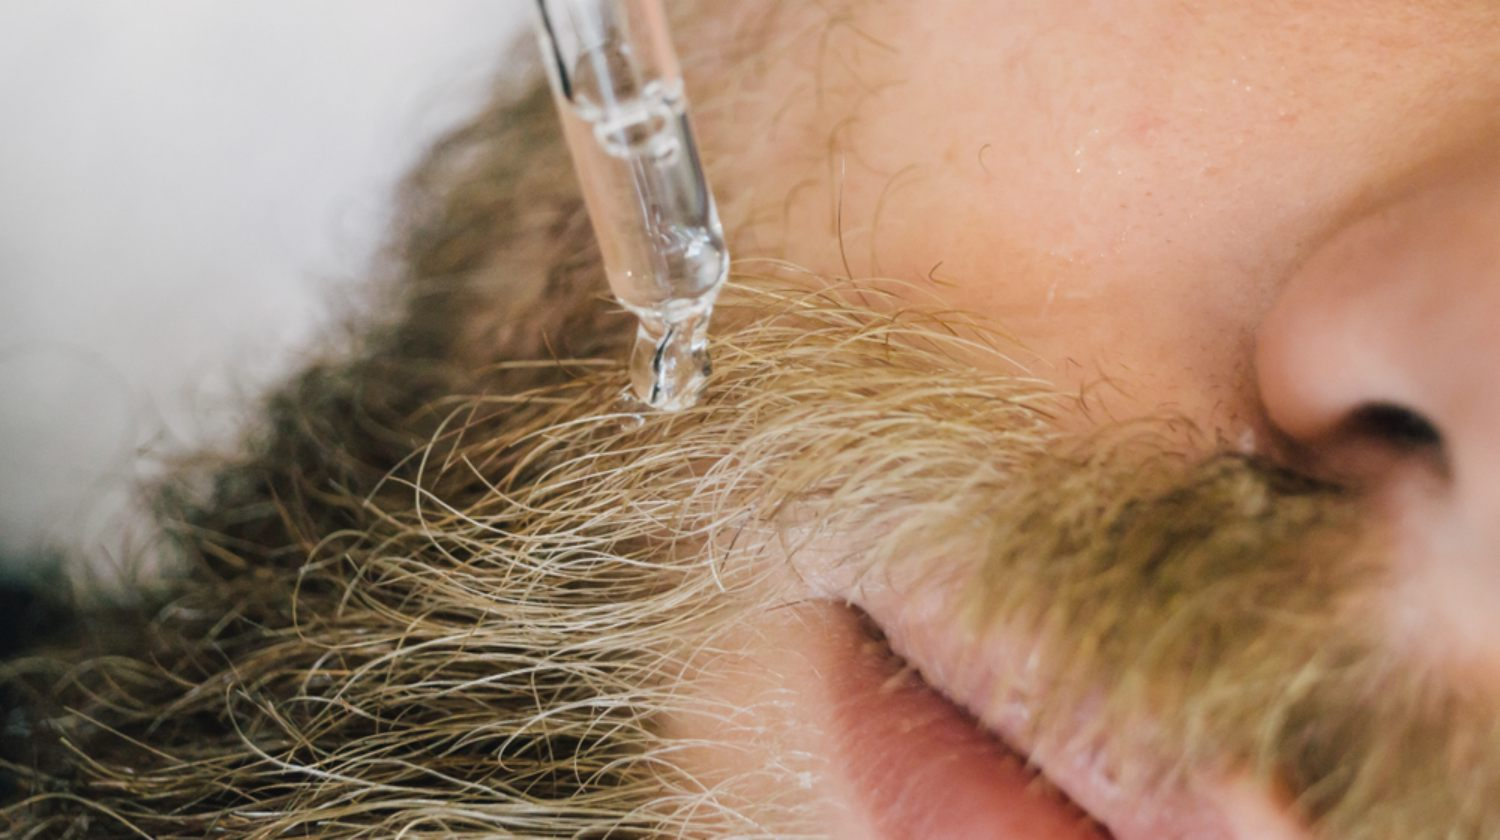 Feature | Applying gel serum on bearded man face using glass pipette | Wonders of Using Coconut Oil for Beard Care and Grooming